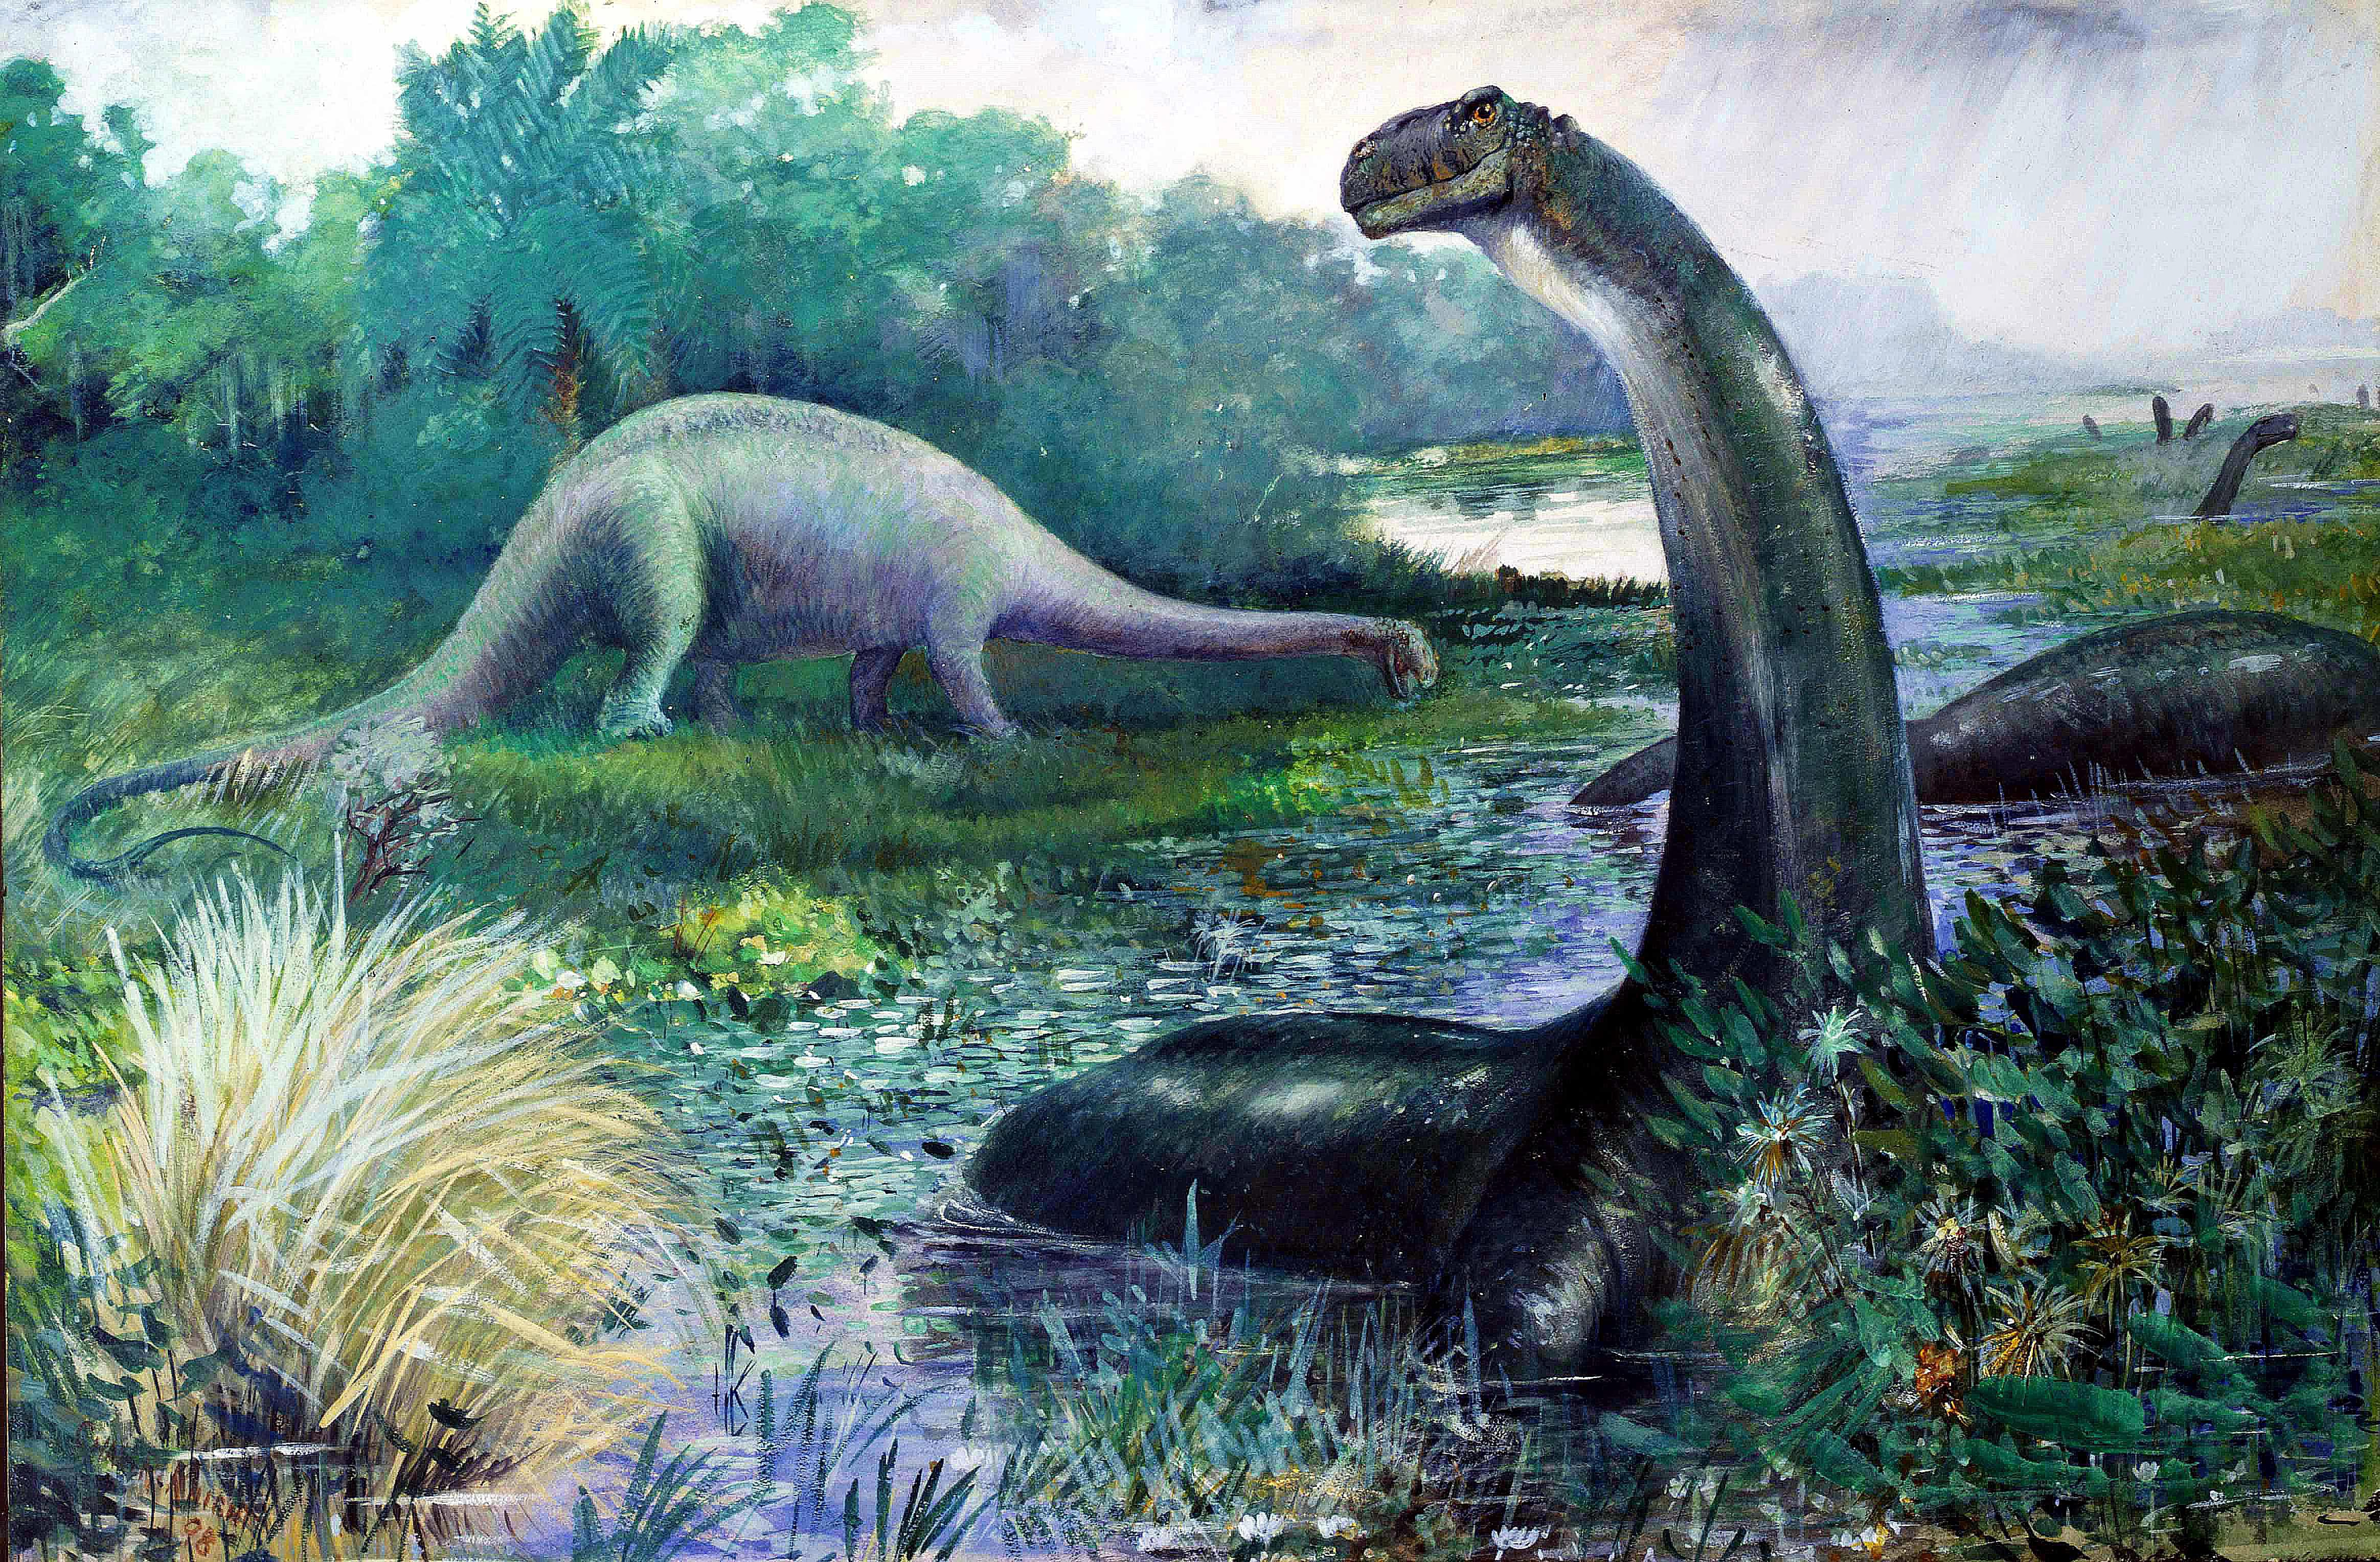 An outdated depiction of Apatosaurus